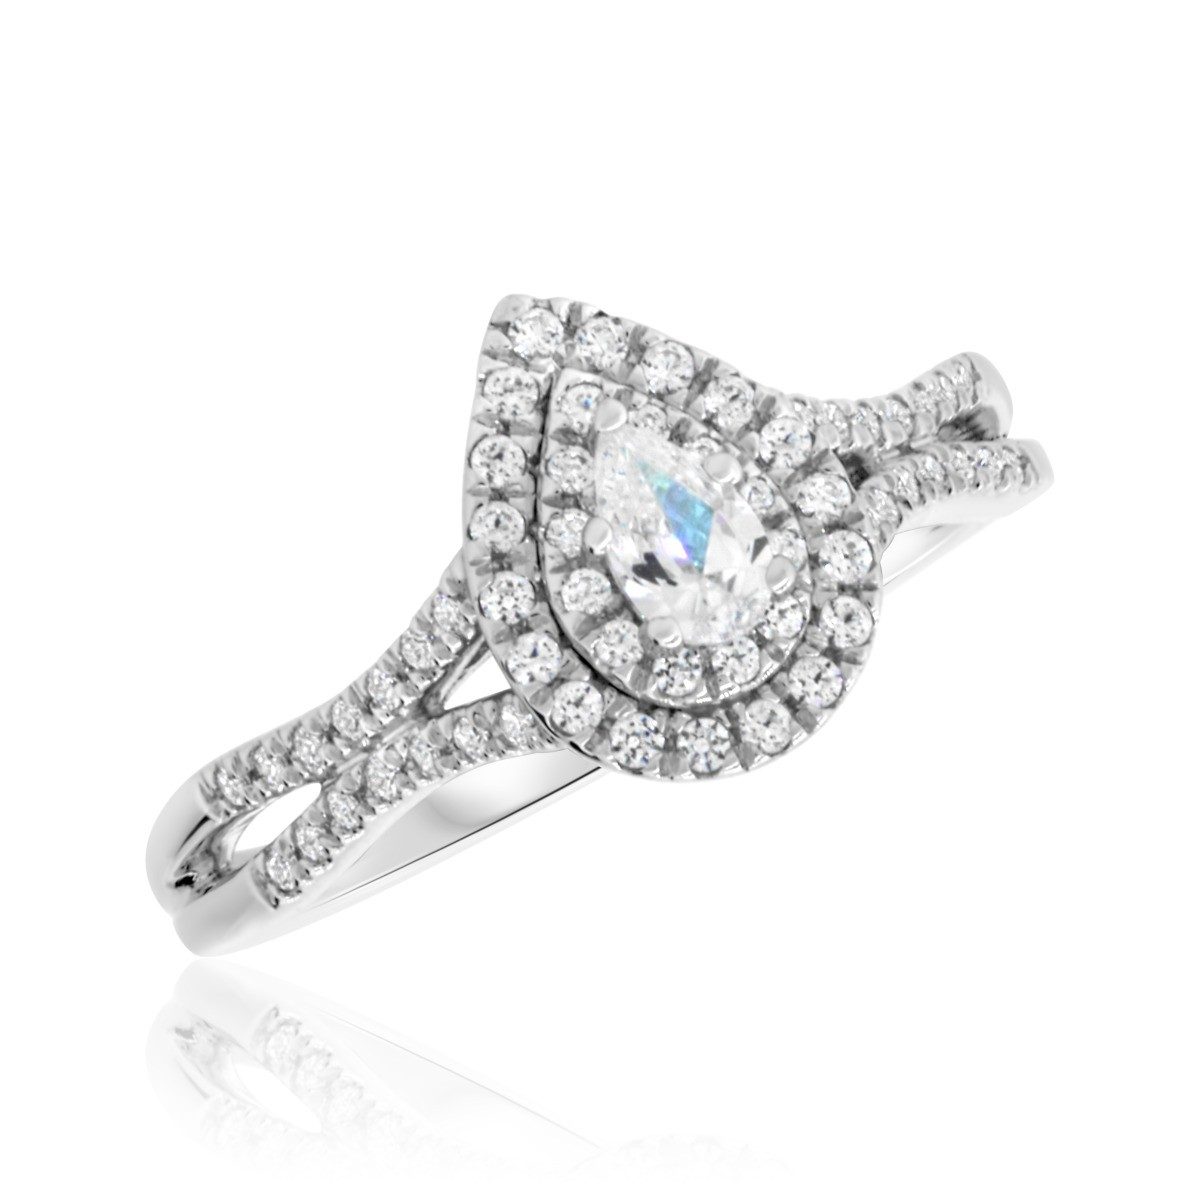 1/2 CT. T.W. Diamond Engagement Ring 14K White Gold